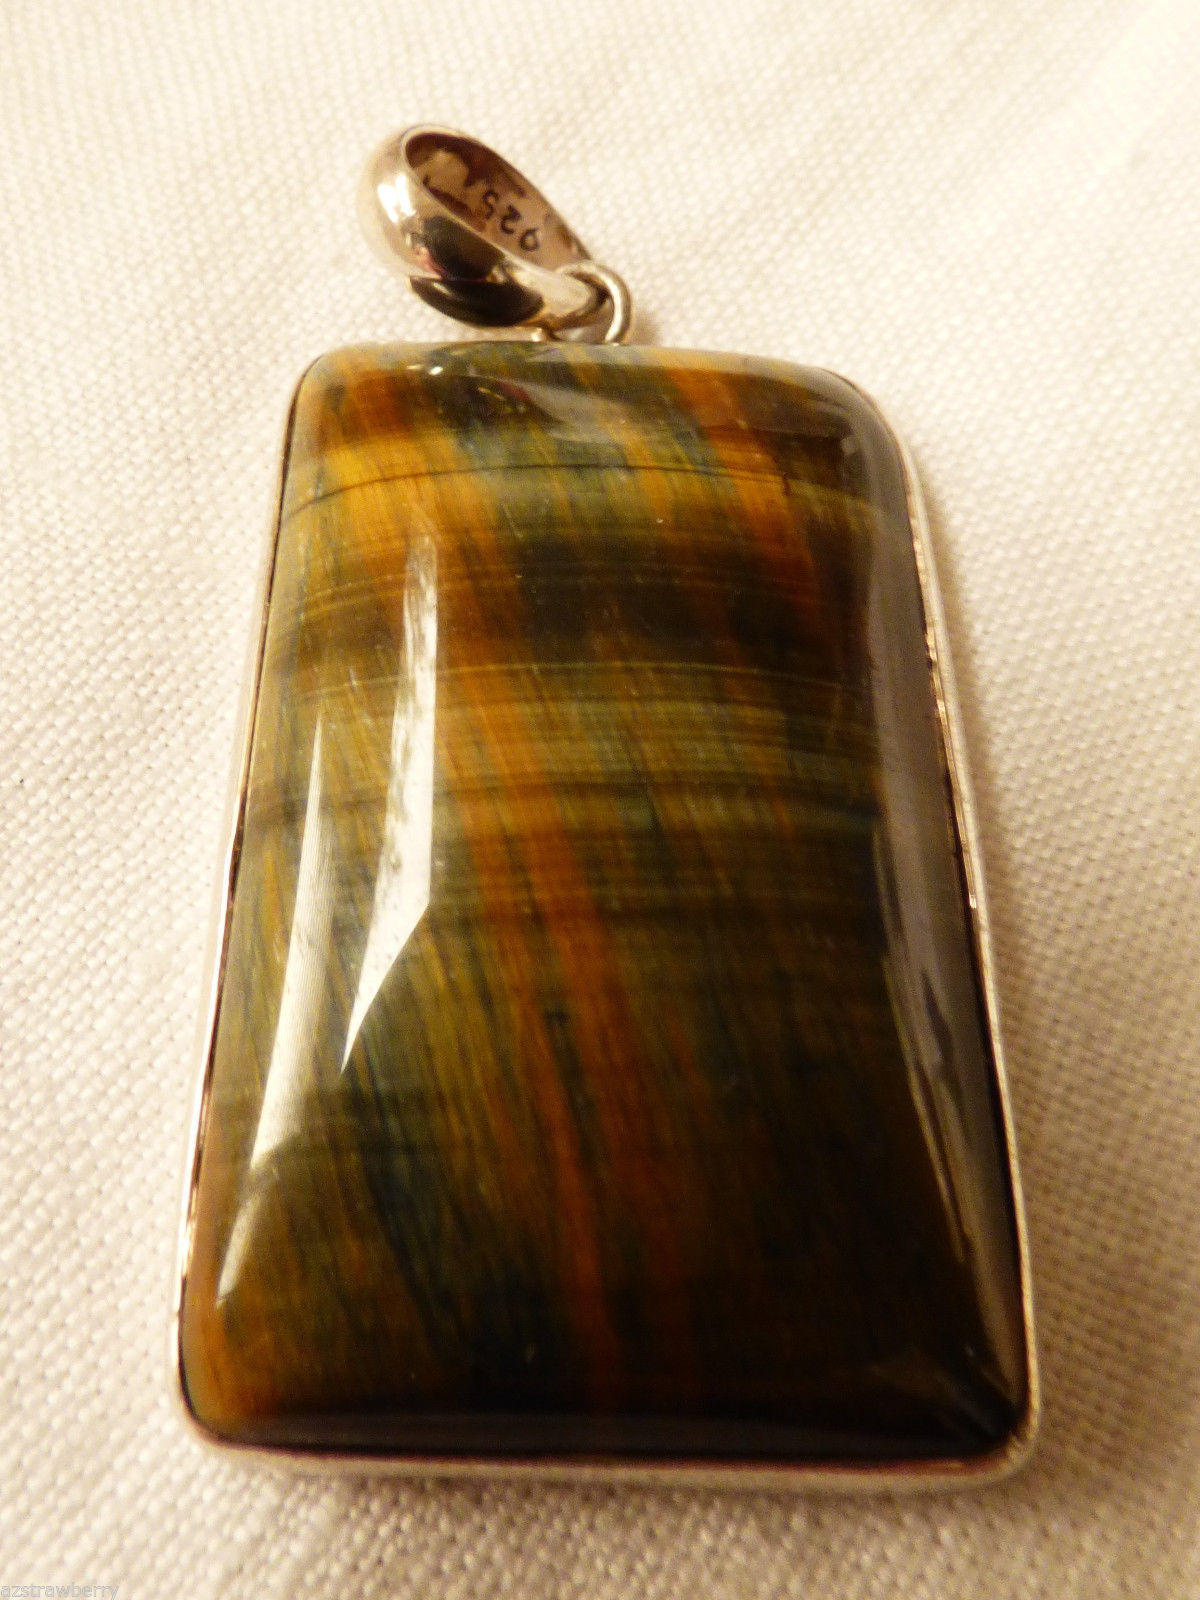 Primary image for Artisan Hand Crafted Sterling Silver 925 Amazing Tiger Eye Stone Pendant